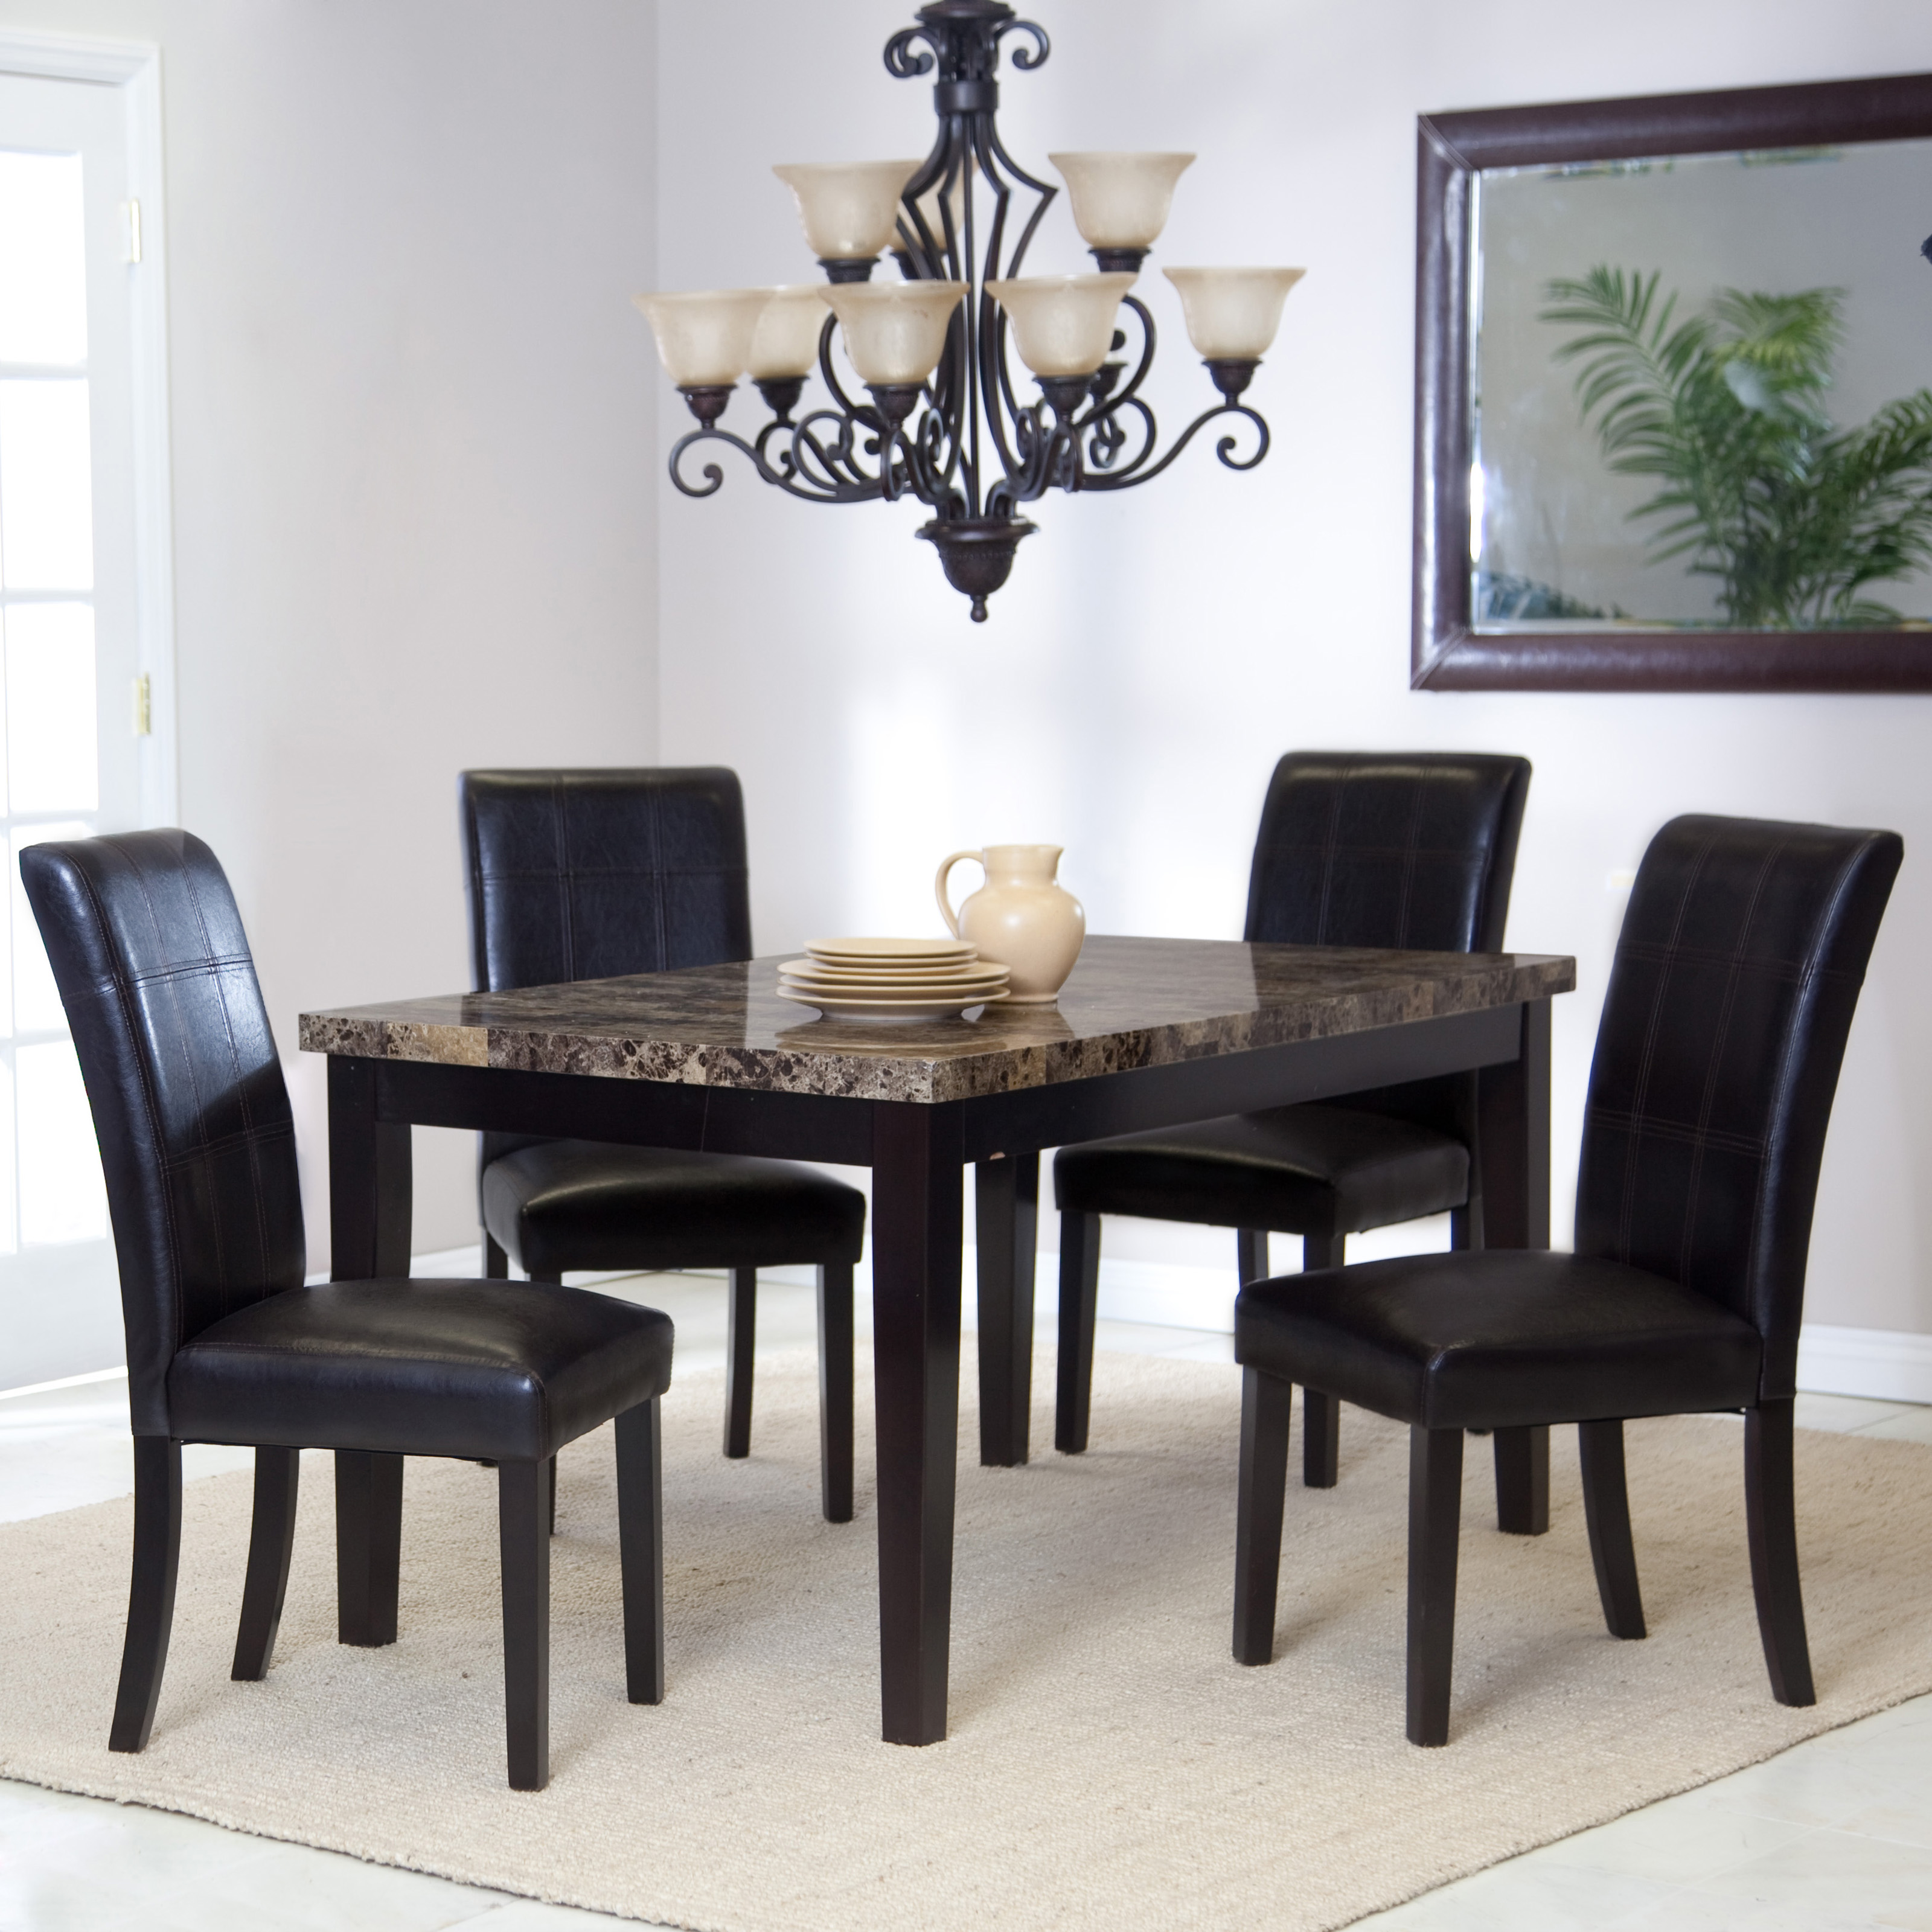 Palazzo 5-piece Dining Set & Casual Kitchen \u0026 Dining Table Sets | Hayneedle